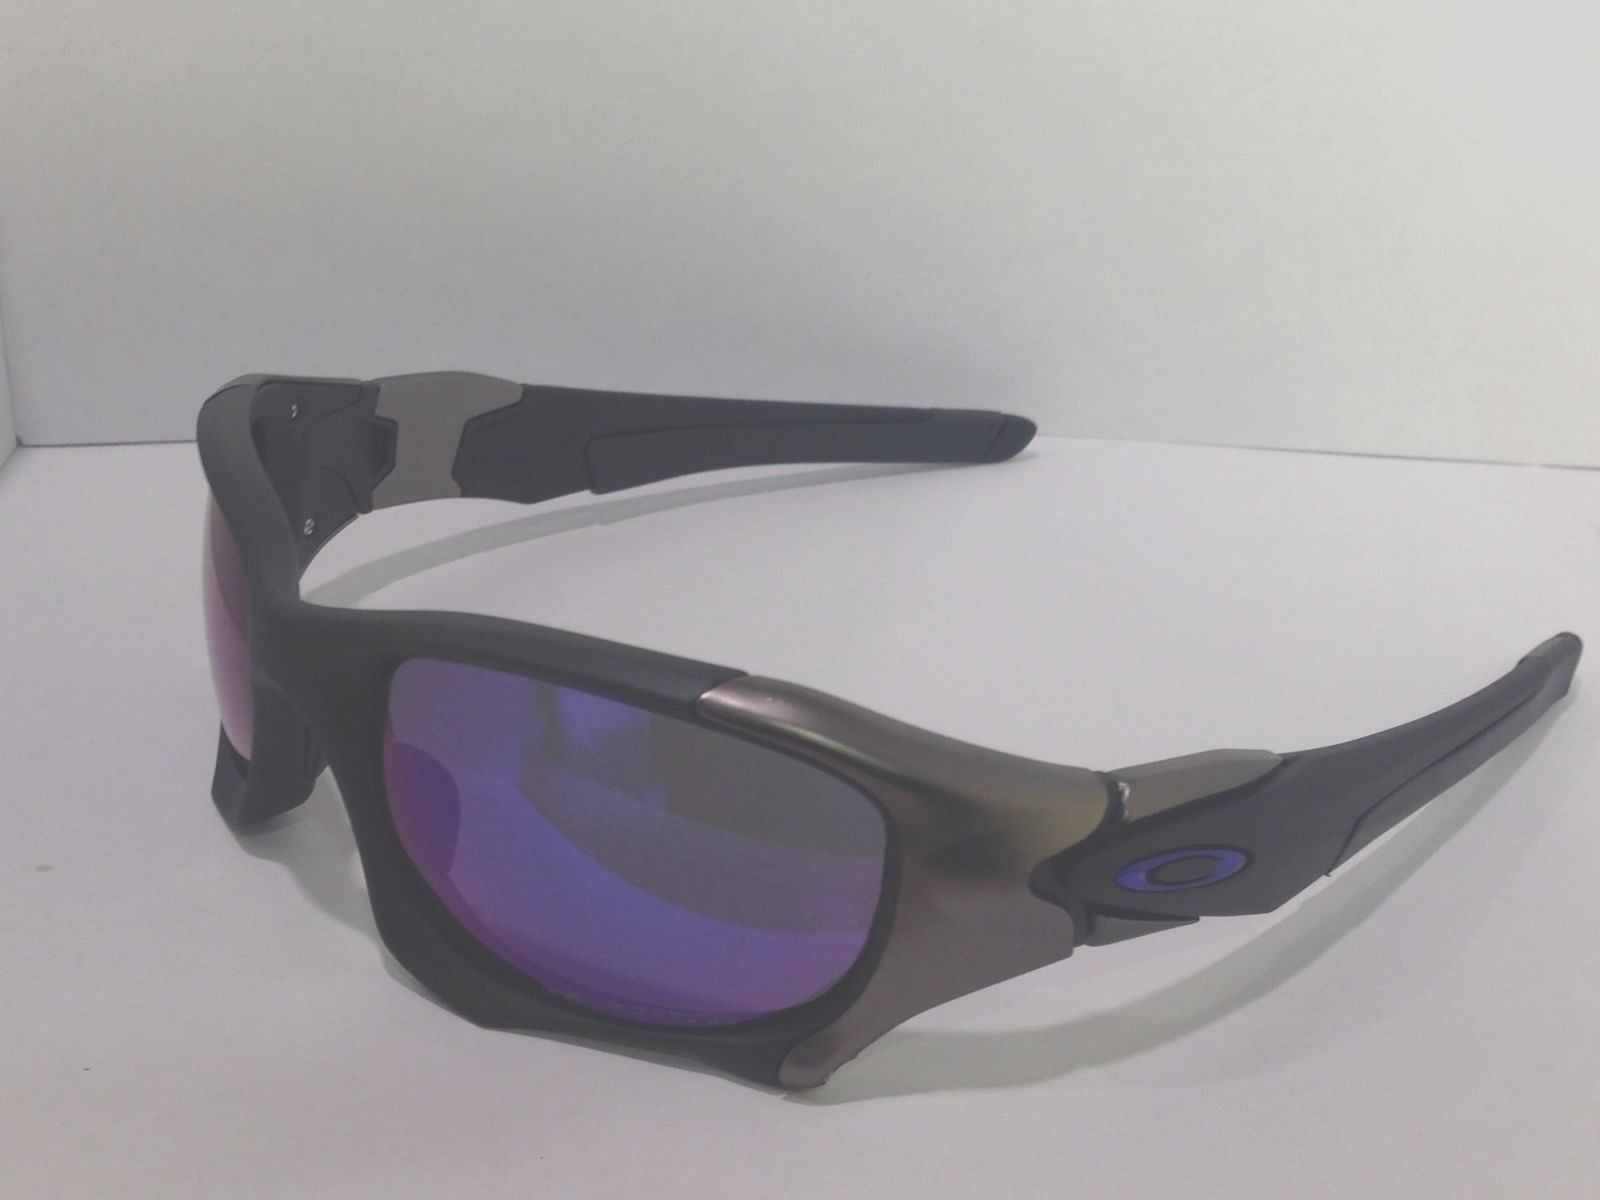 I was told these are Oakley PB2 lens - PB2v2.JPG